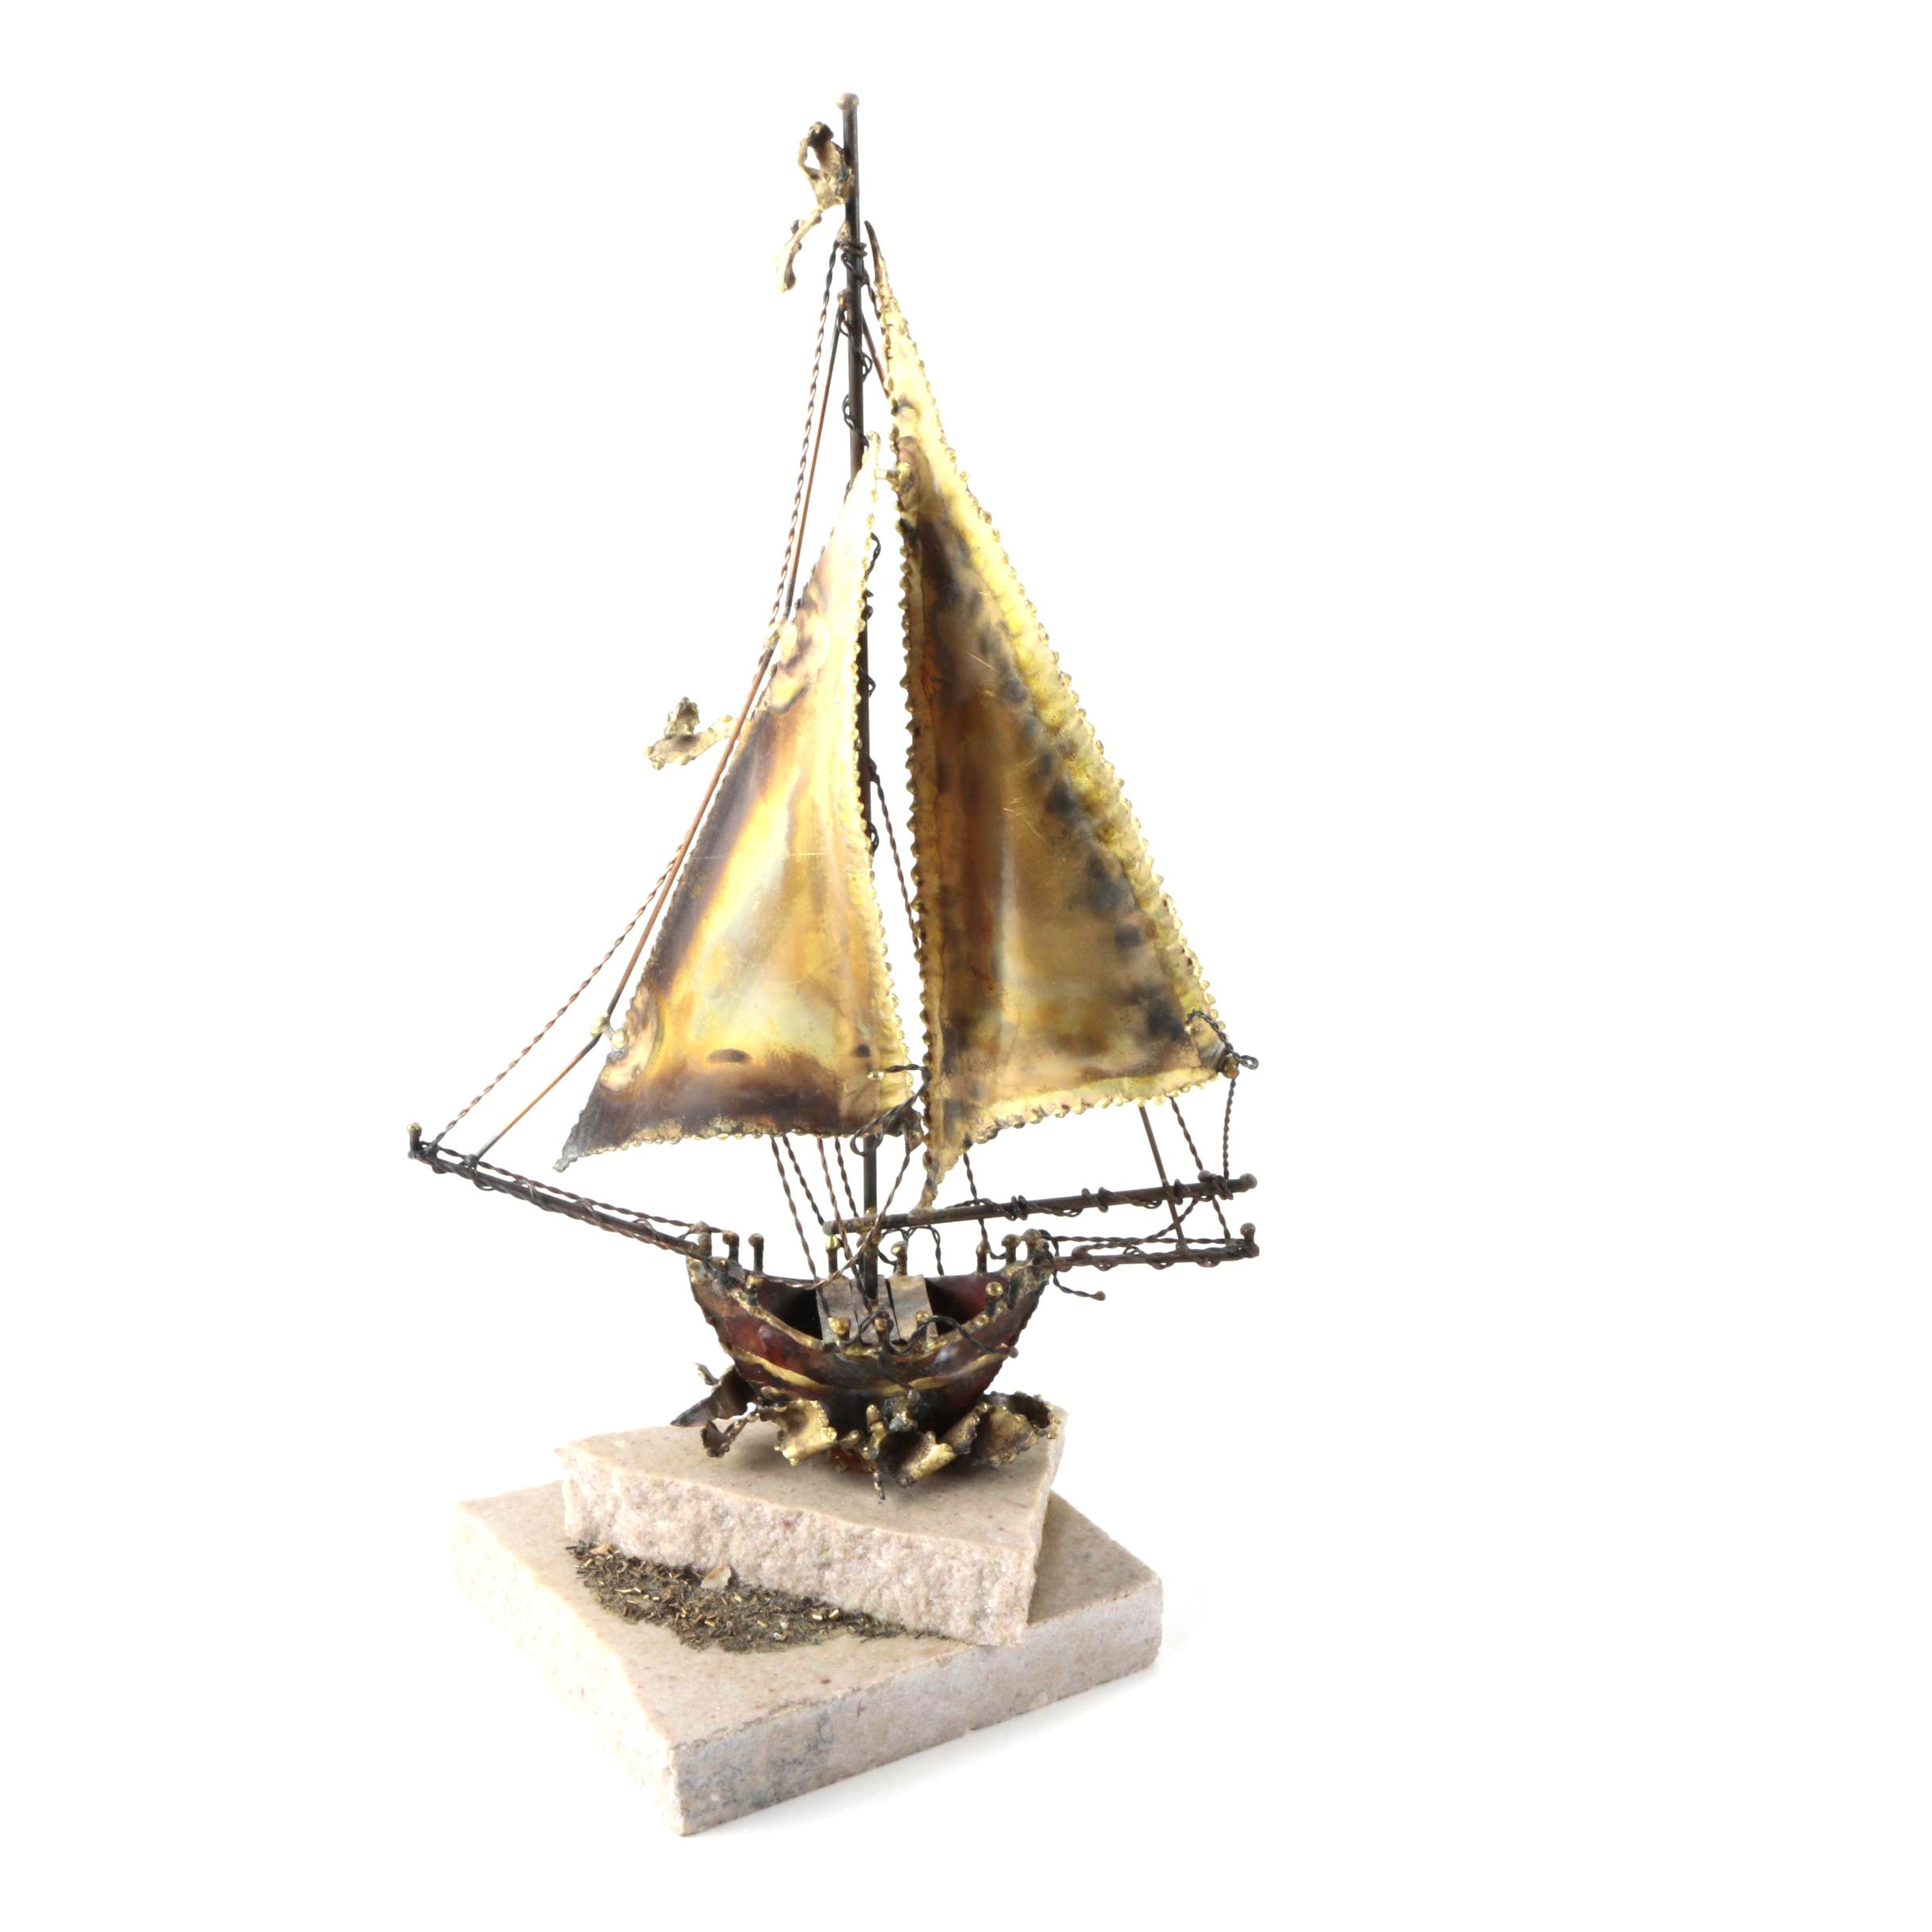 Foustino Torch-Cut Metal Sculpture on Stone of Sailboat